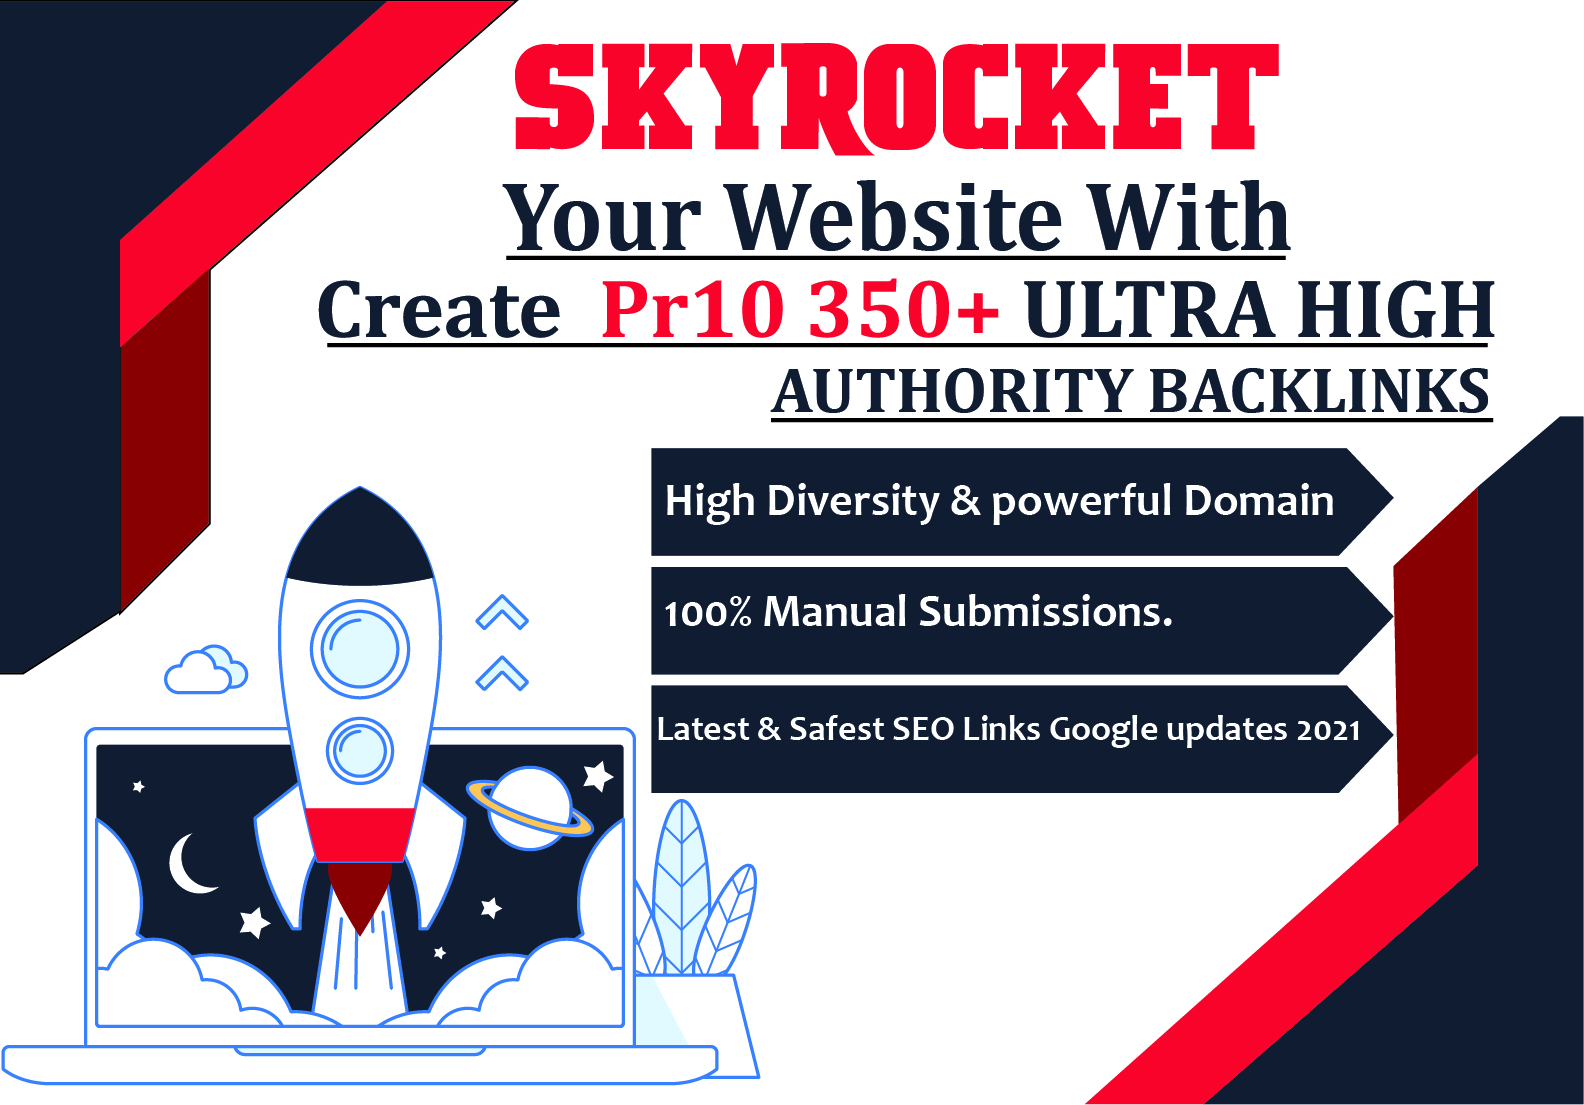 Create Pr10-350+ ULTRA HIGH AUTHORITY Backlinks,  All in one SEO Package